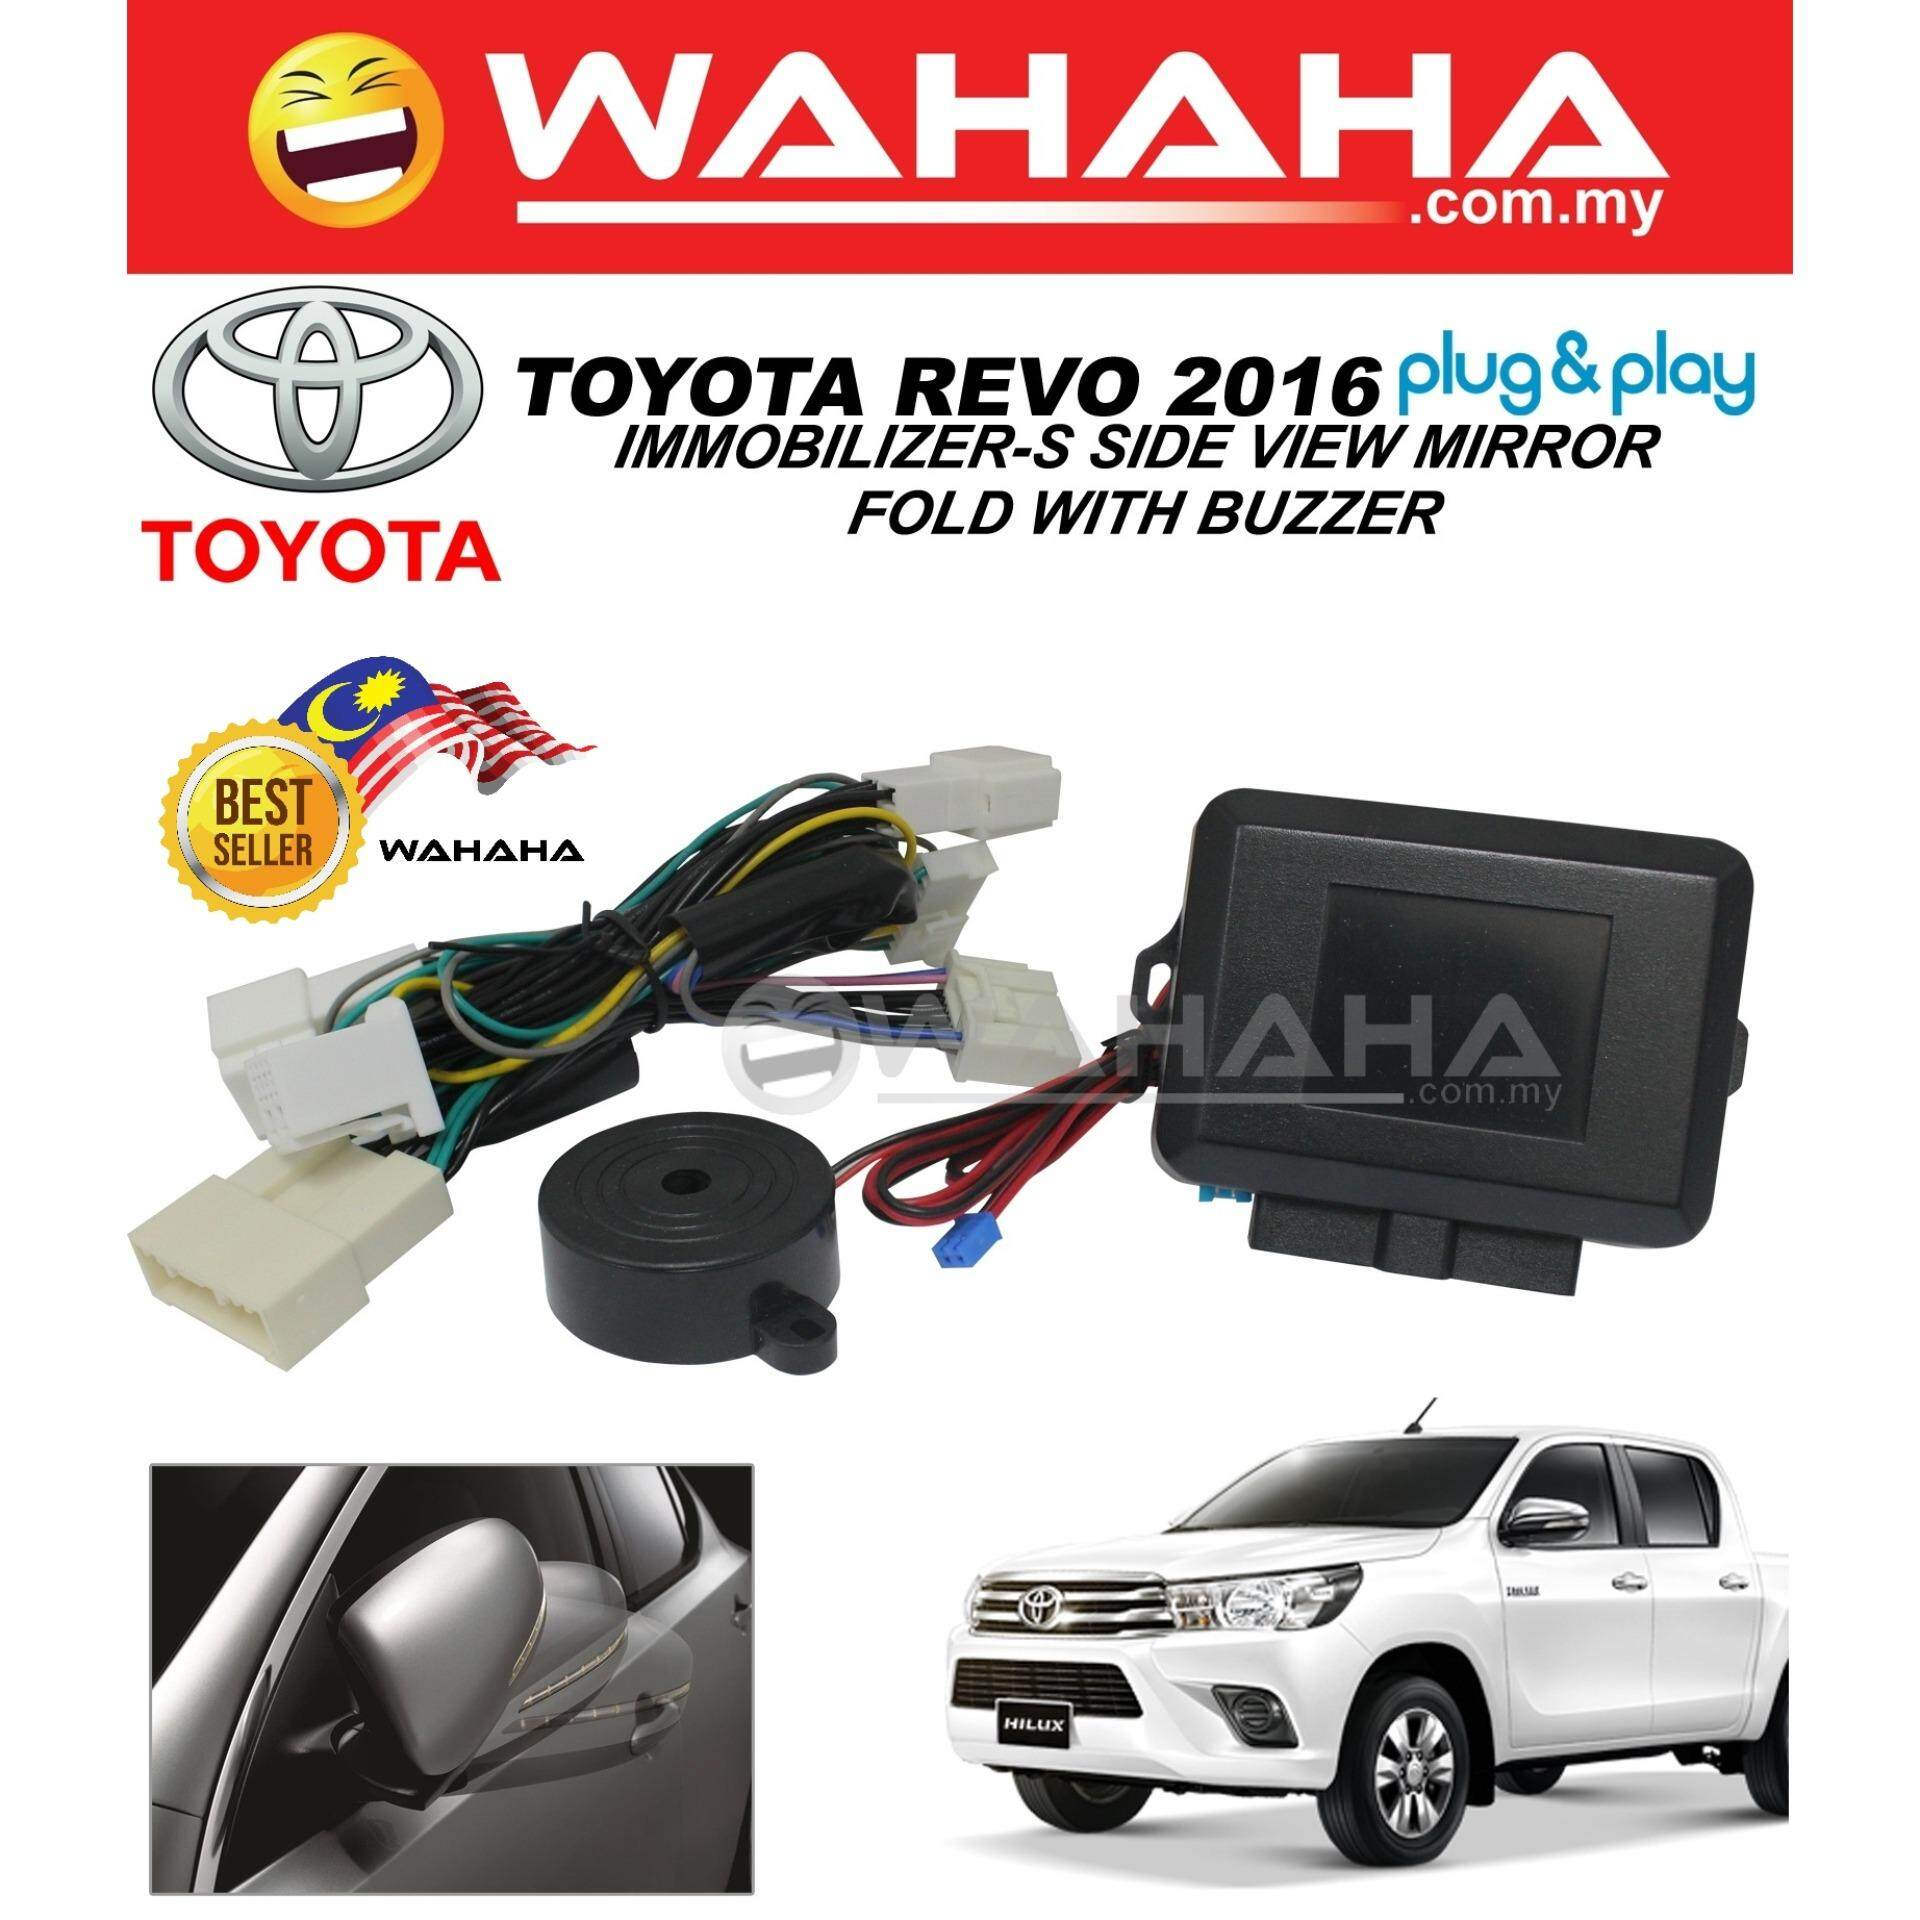 Toyota Hilux Revo Side Mirror Auto Fold Folding Controller Module with Buzzer (2 in 1)